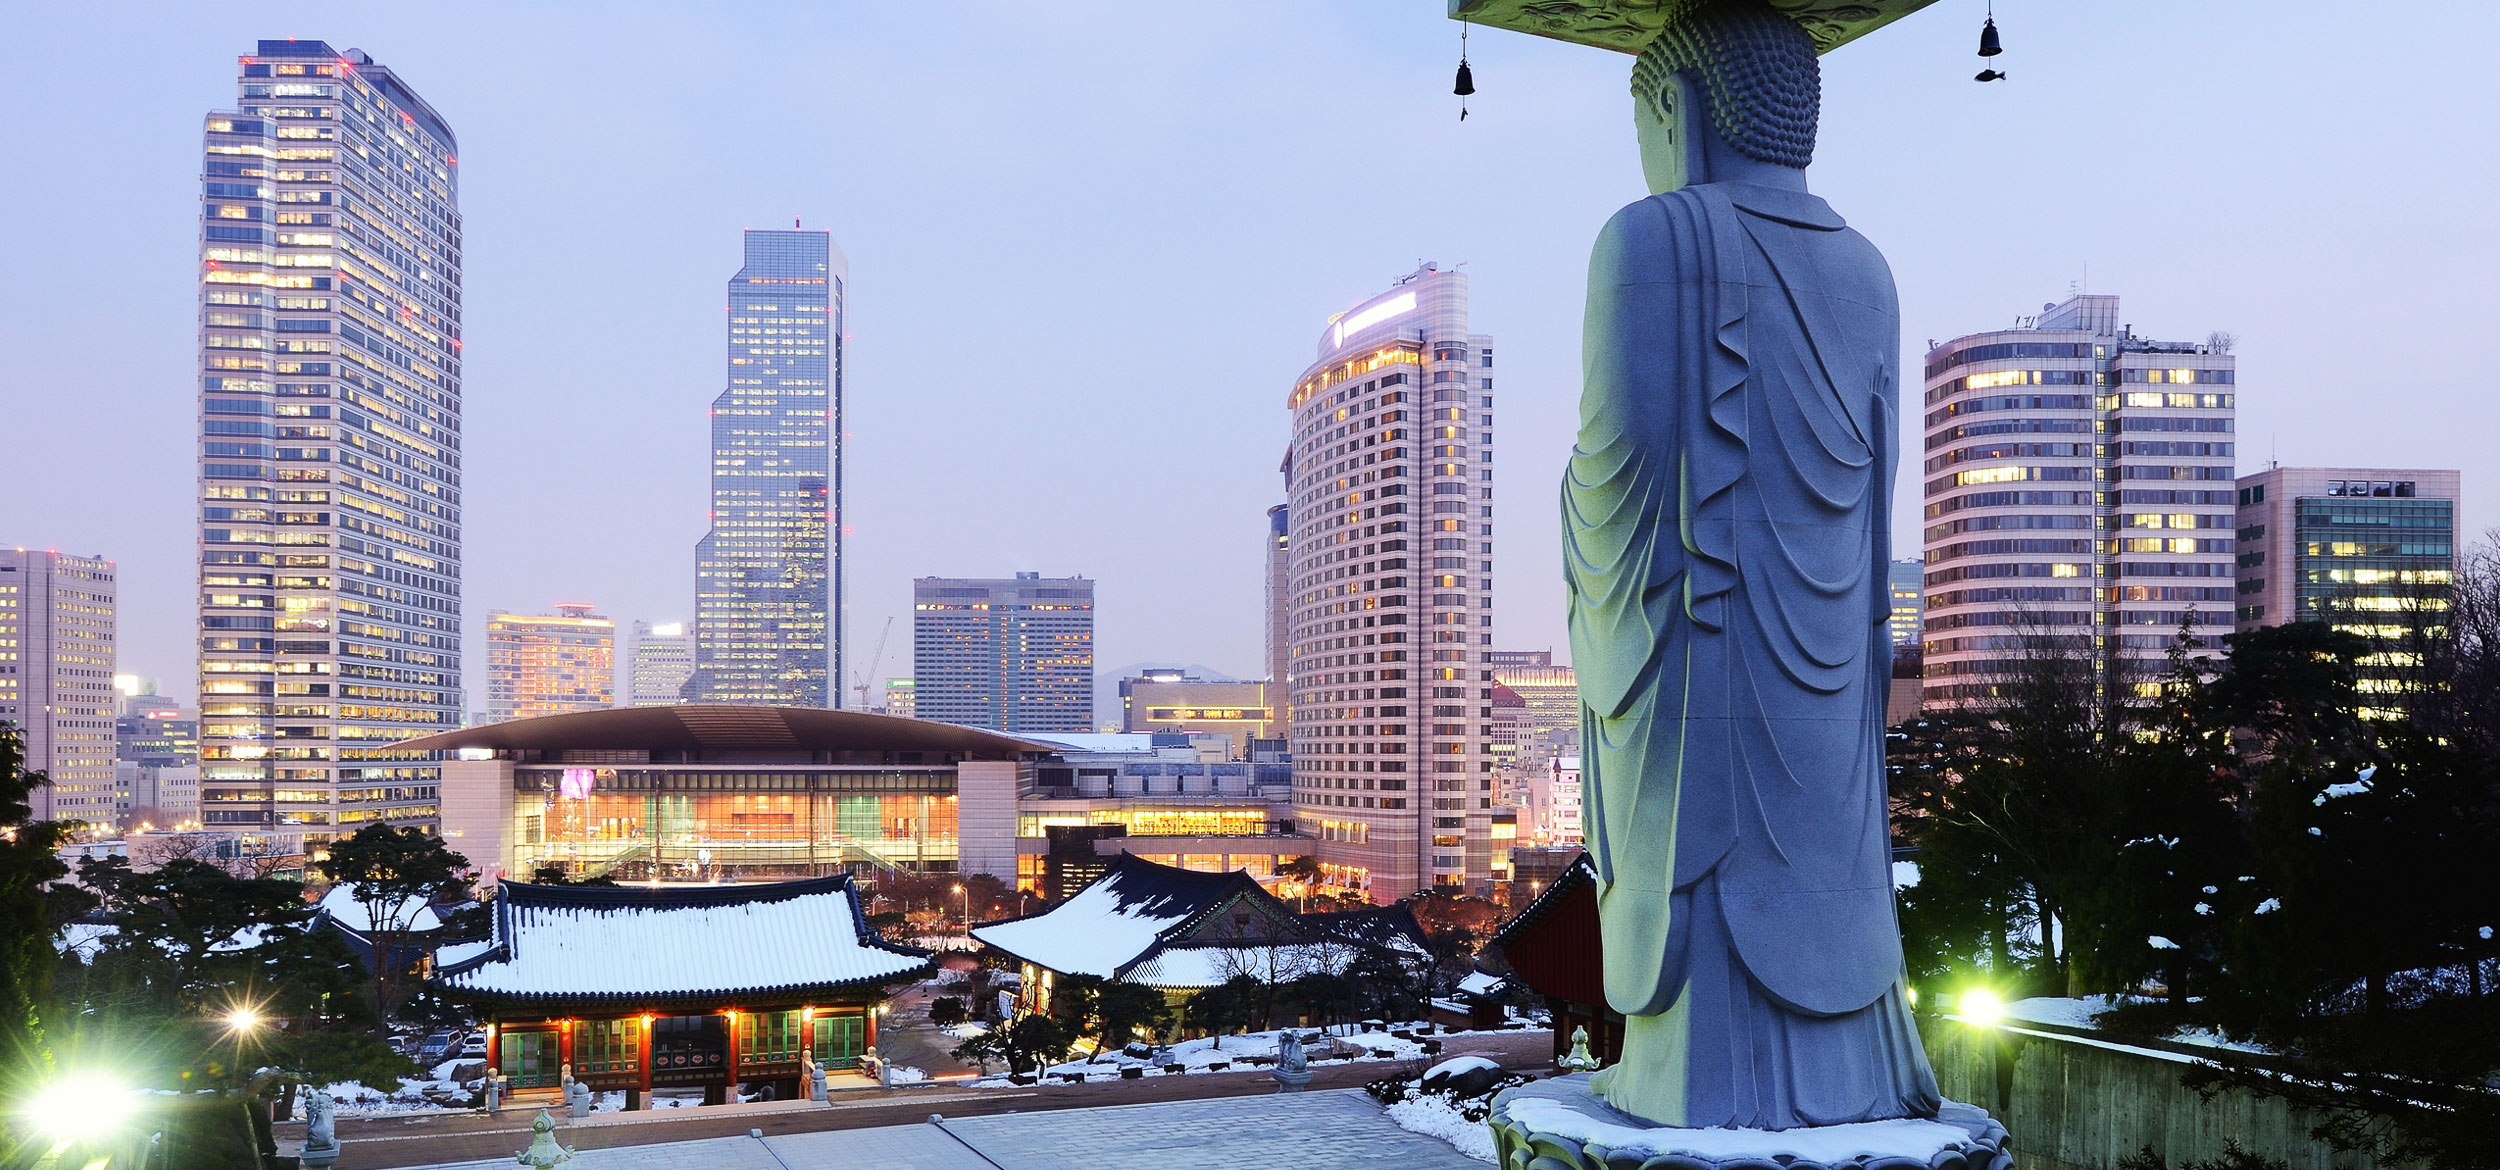 View of the Bongeunsa Temple and urban buildings in the Gangnam District of Seoul, Korea.